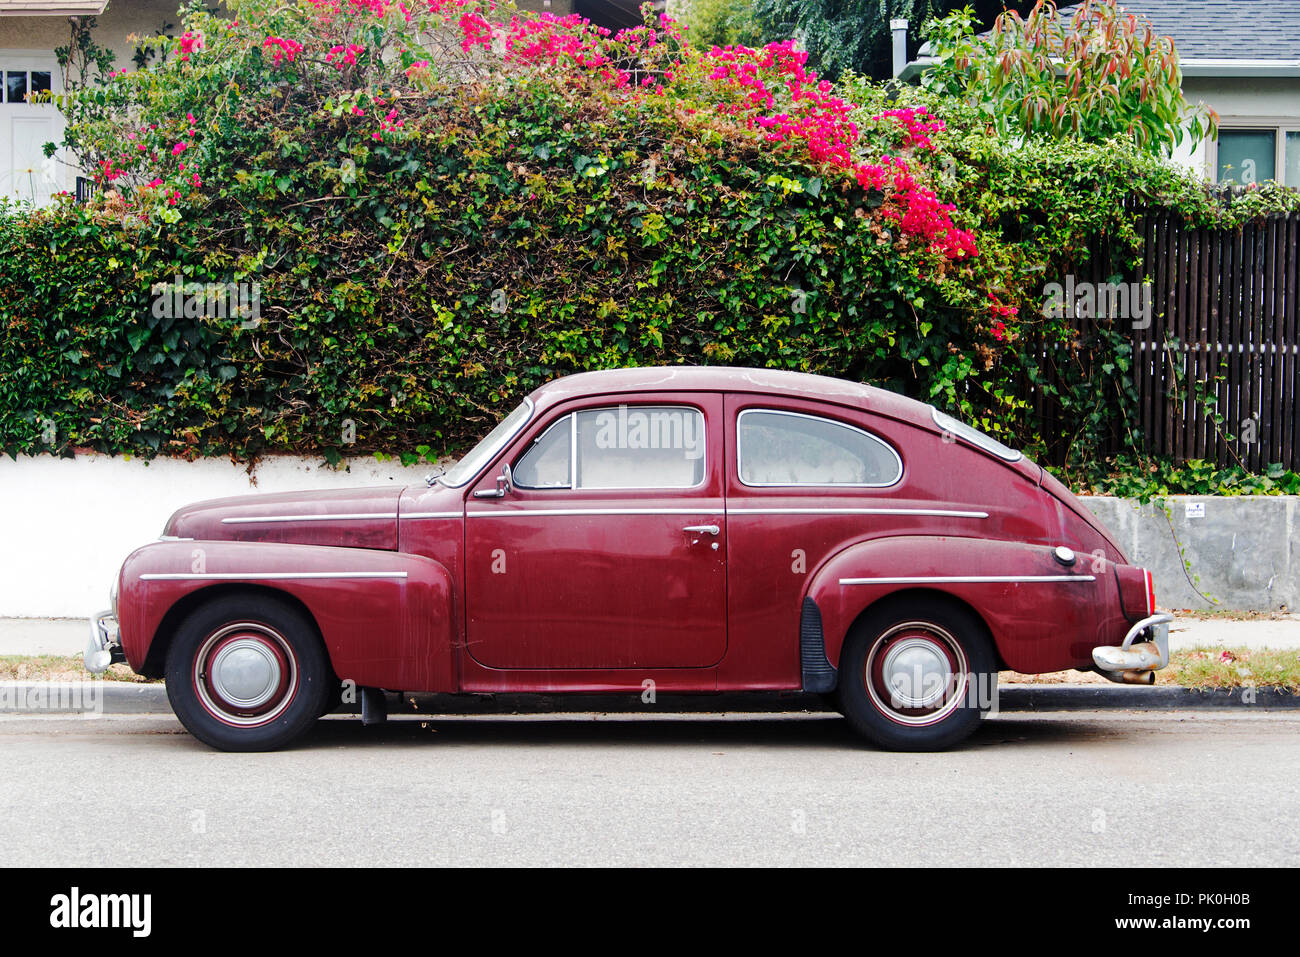 Automobile Design Stock Photos Images Alamy Volvo Pv444 Wiring Diagram Vintage Car Electrical A View Of Classic In Venice Beach California Image